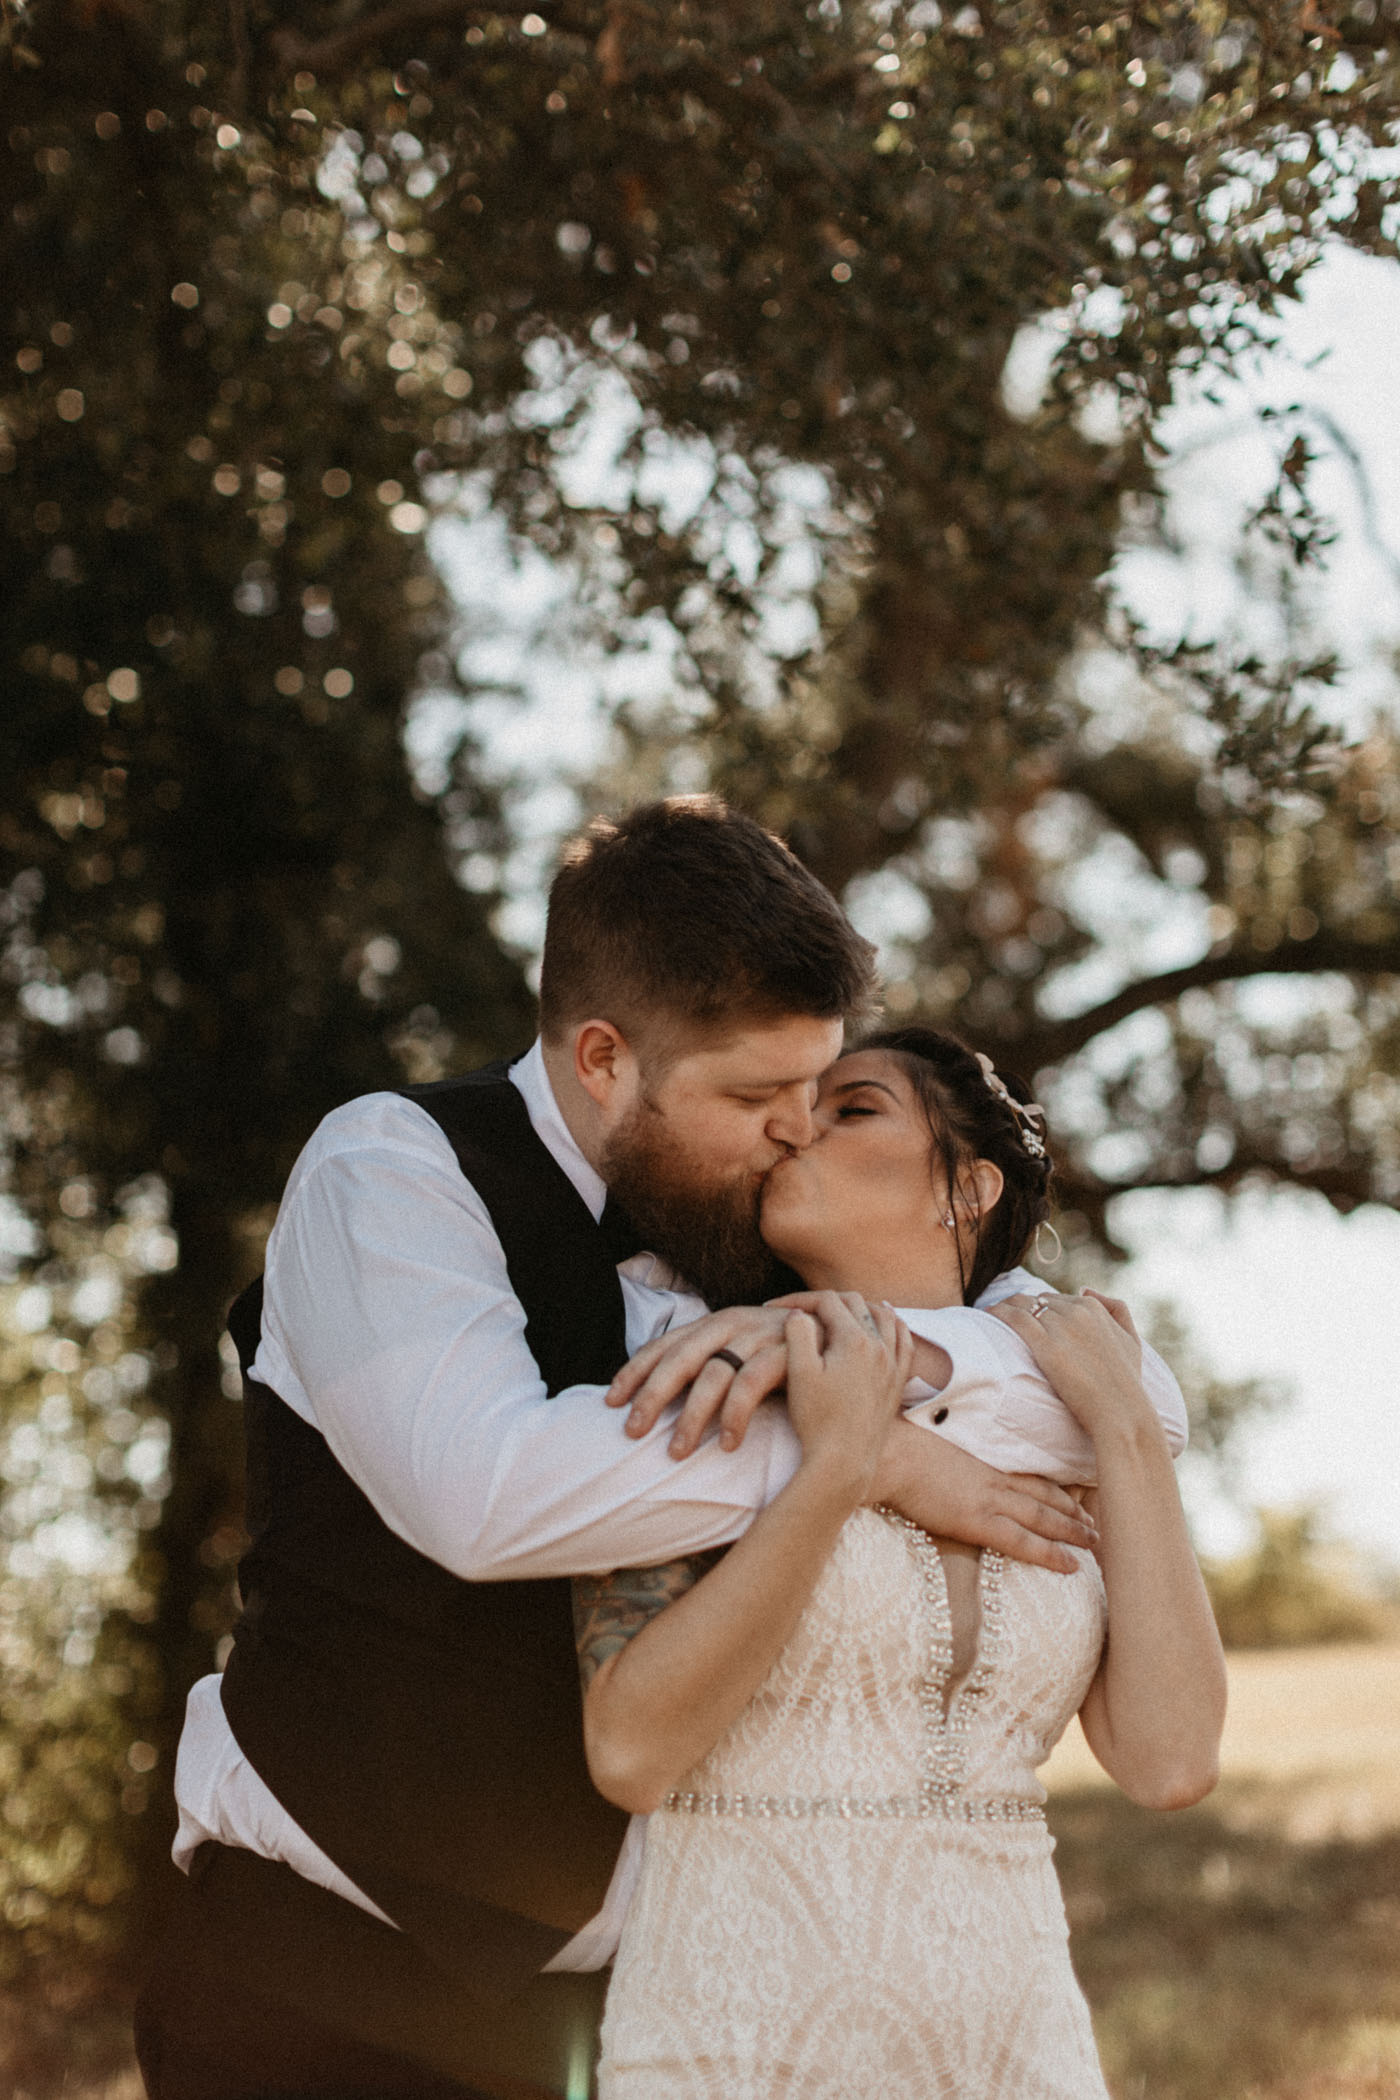 groom hugging bride from behind and kissing her in an open field